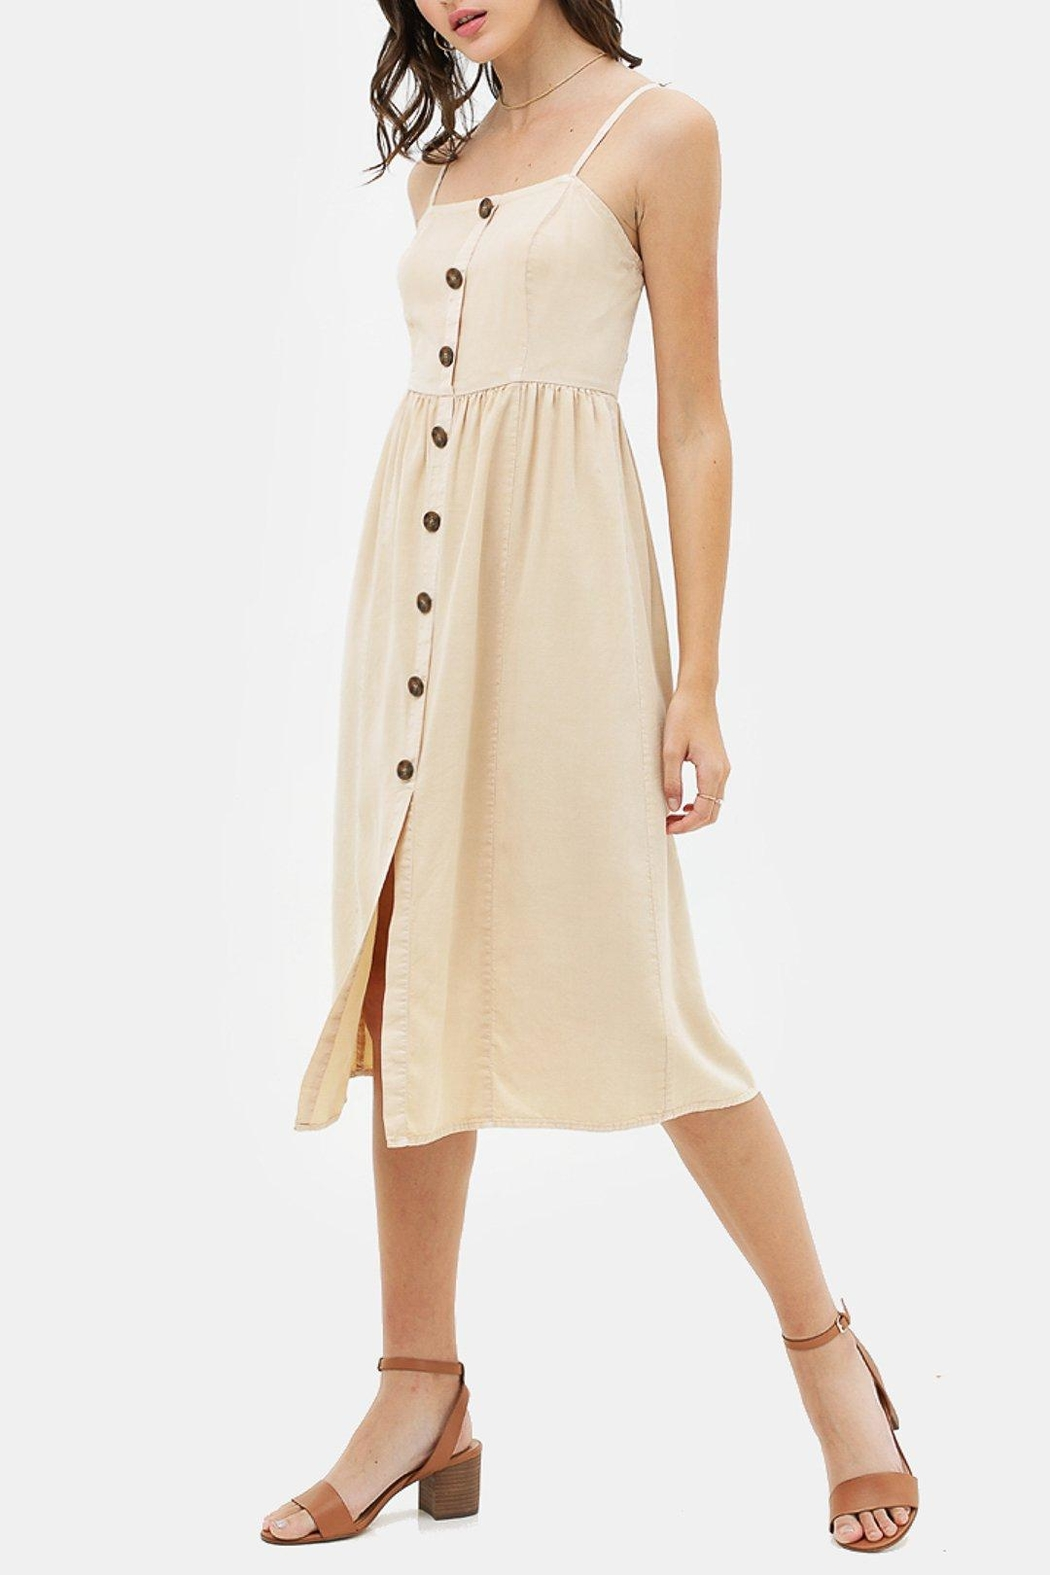 Lovetree Linen Button-Up Dress - Front Full Image